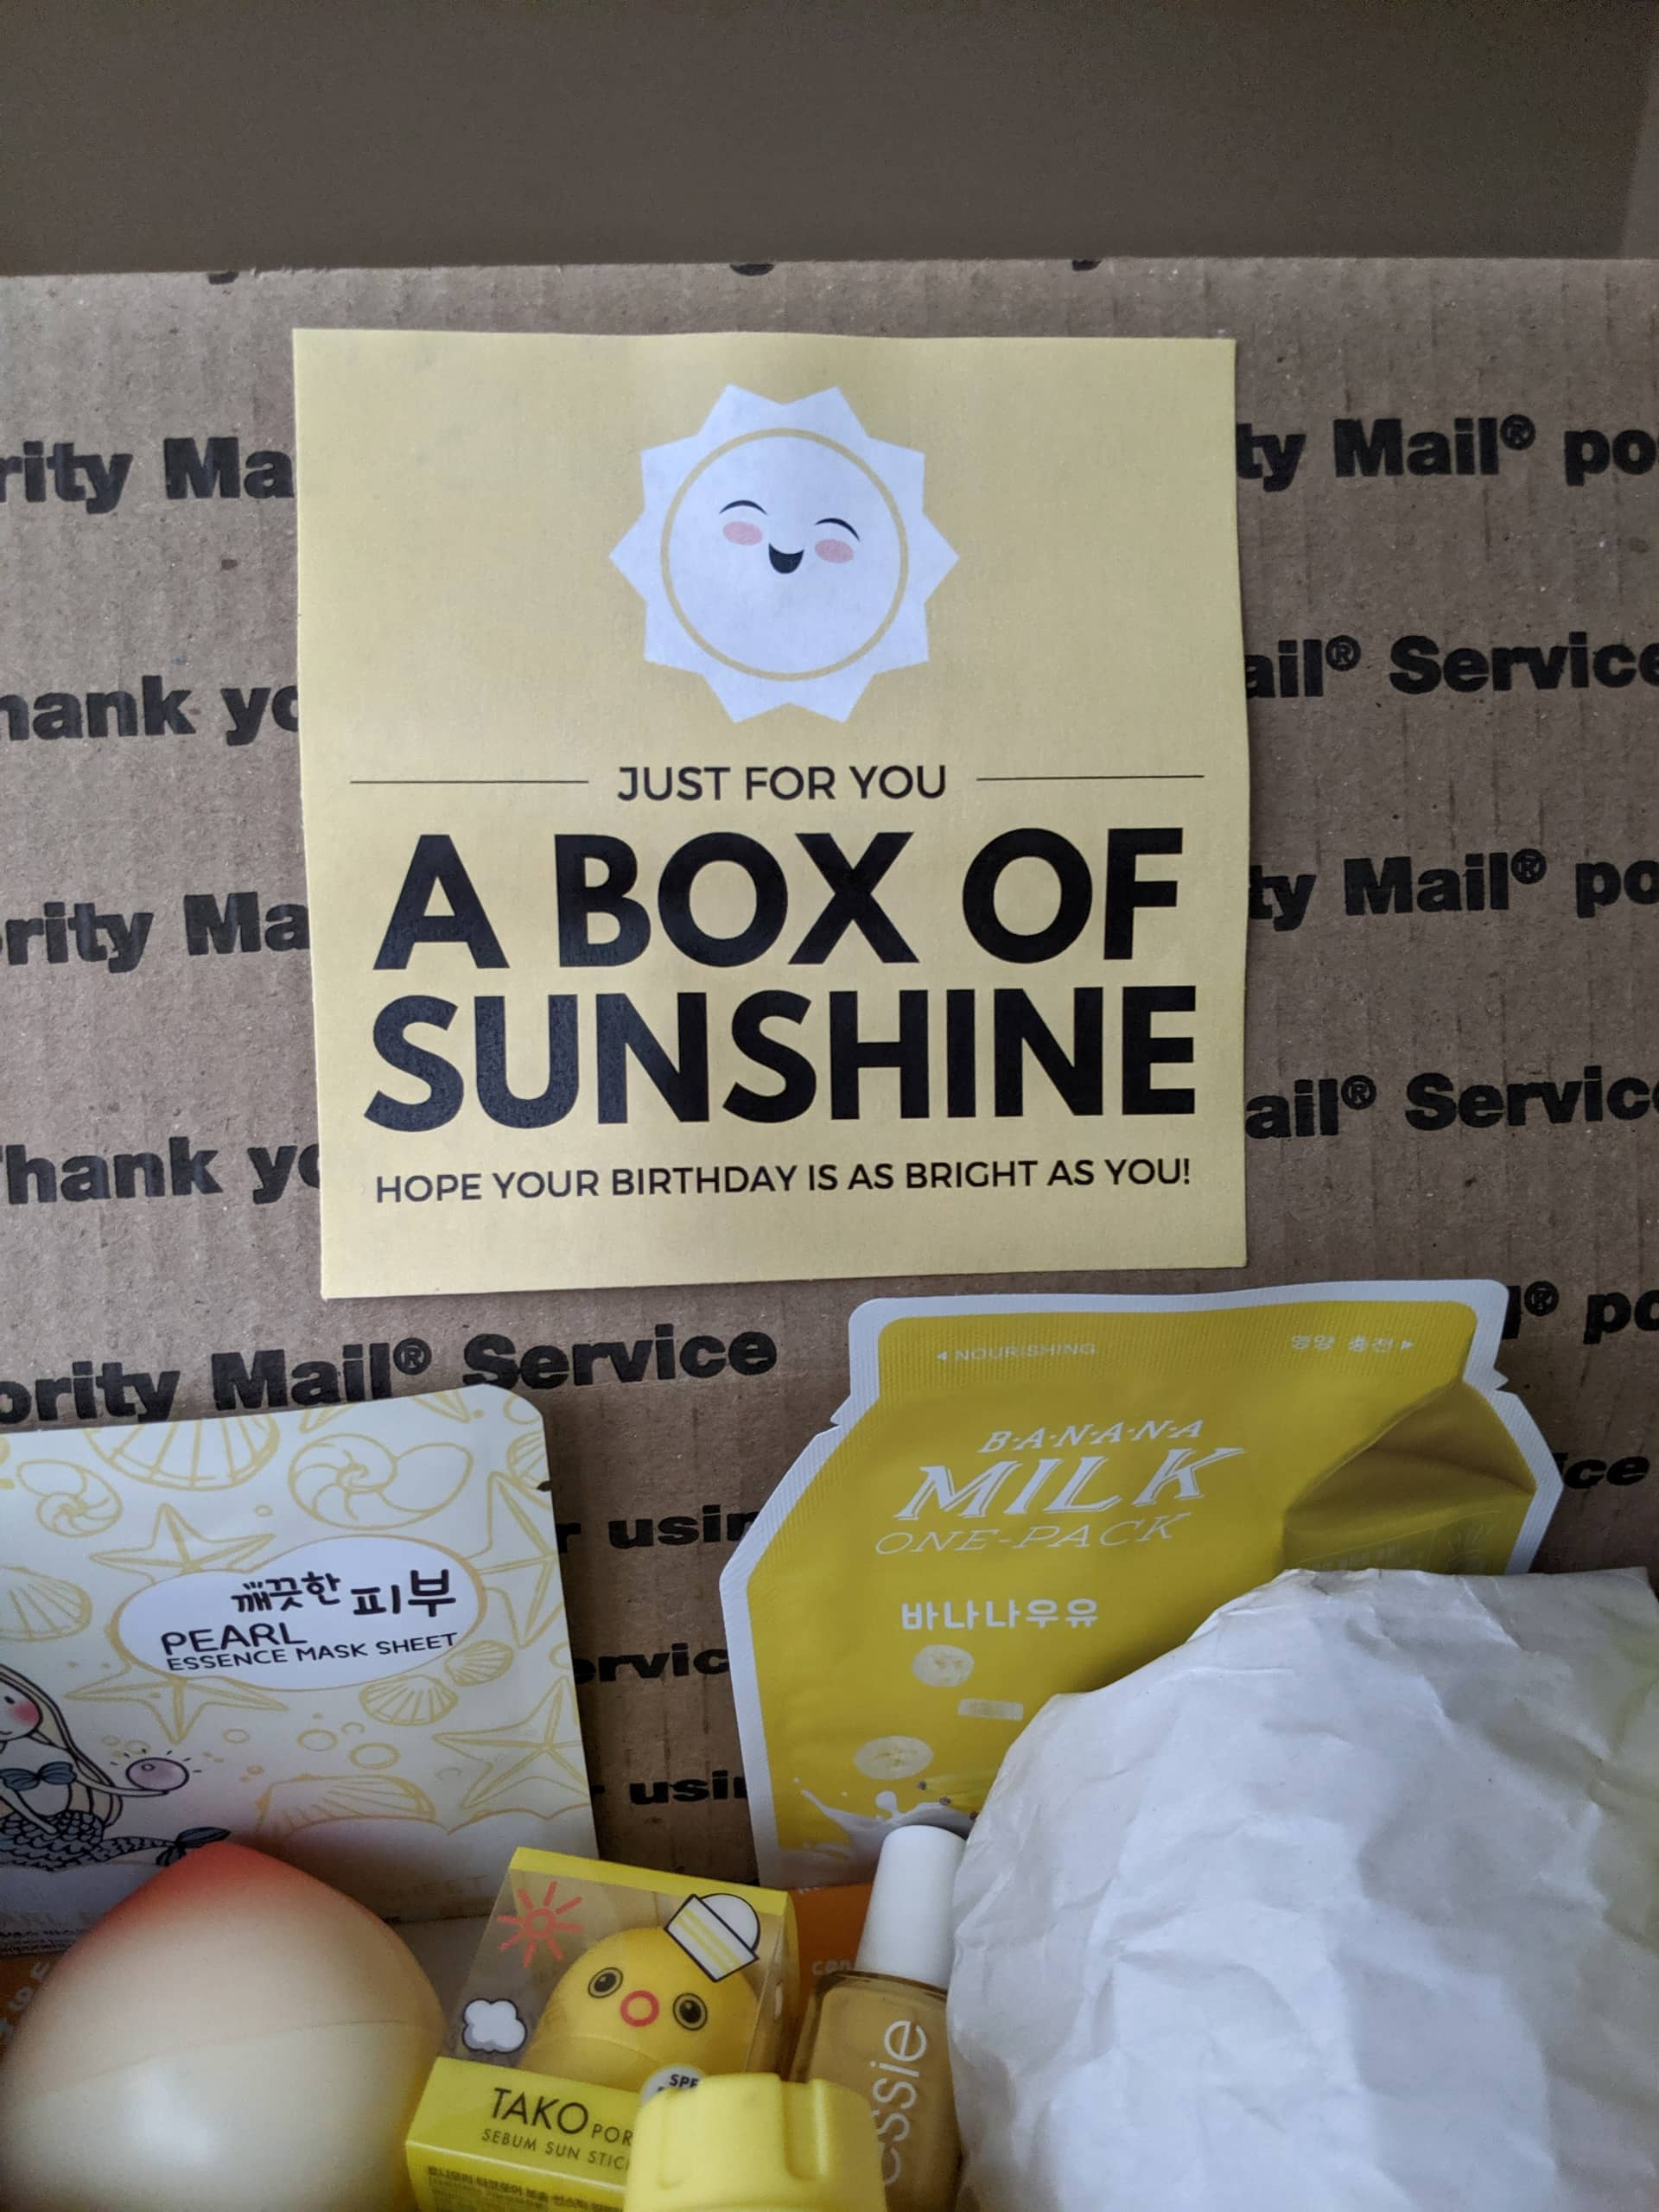 just for you a box of sunshine - hope your birthday is as bright as you printable